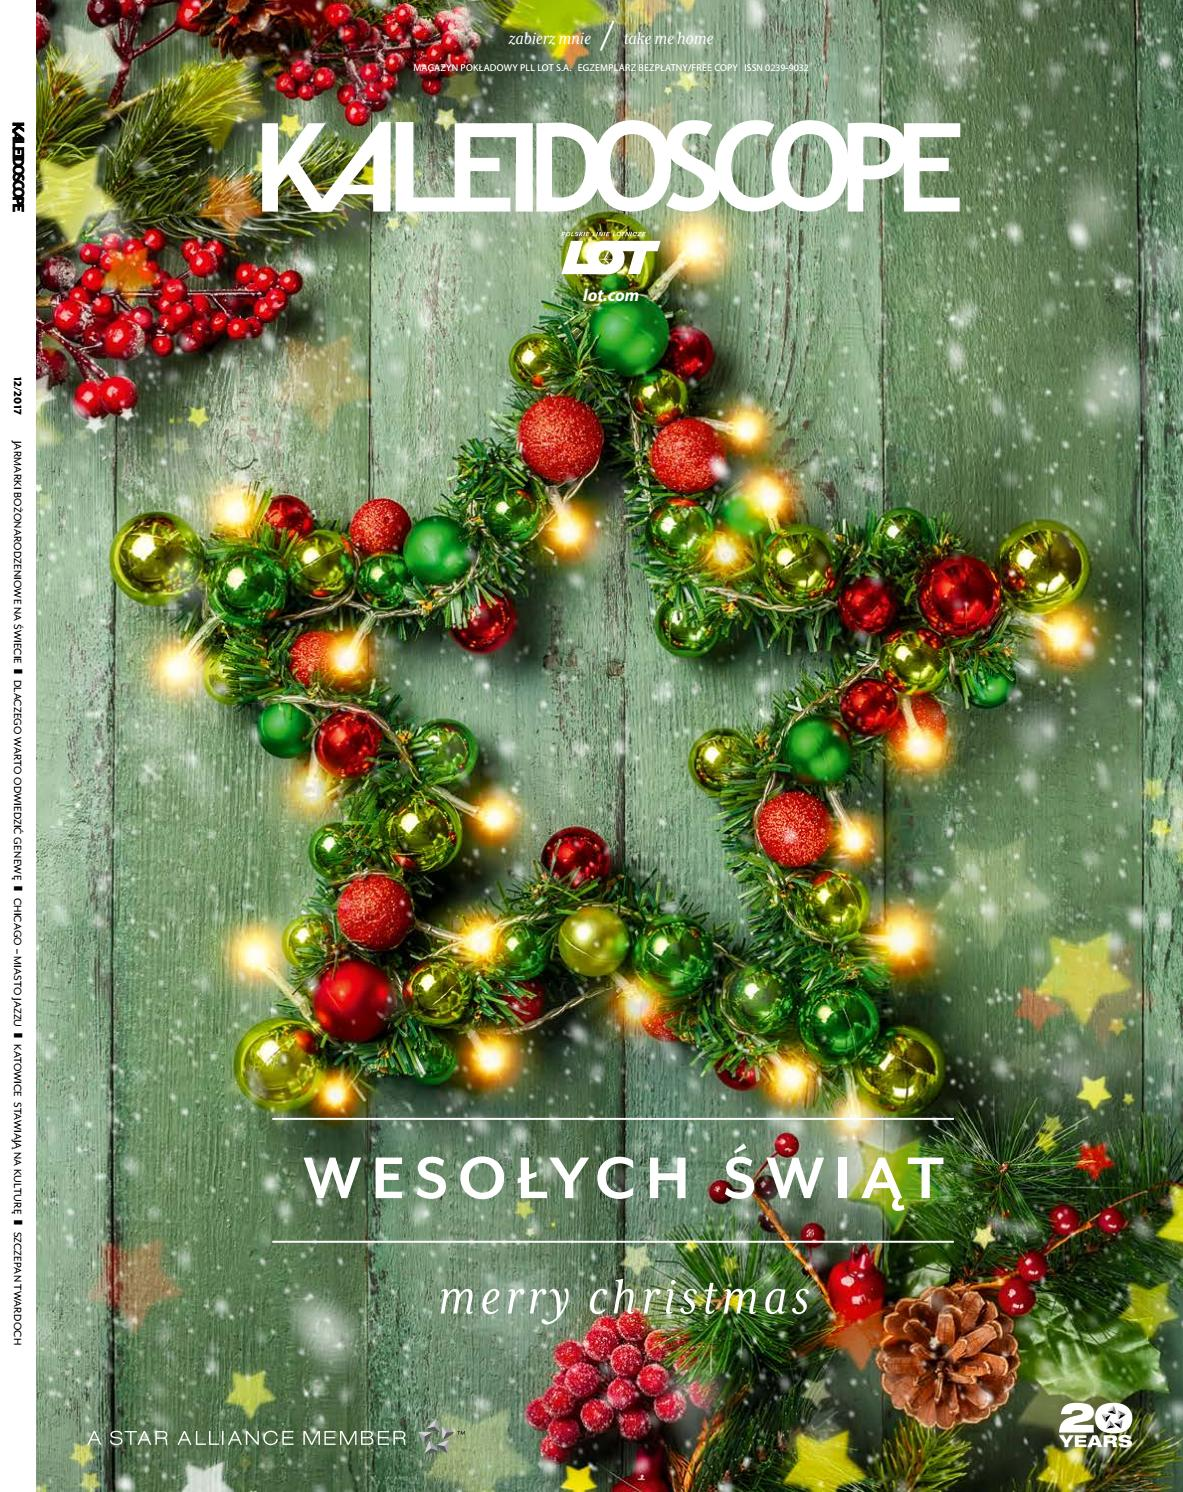 e55bcc6c09831 Kaleidoscope December 2017 by LOT Polish Airlines - issuu